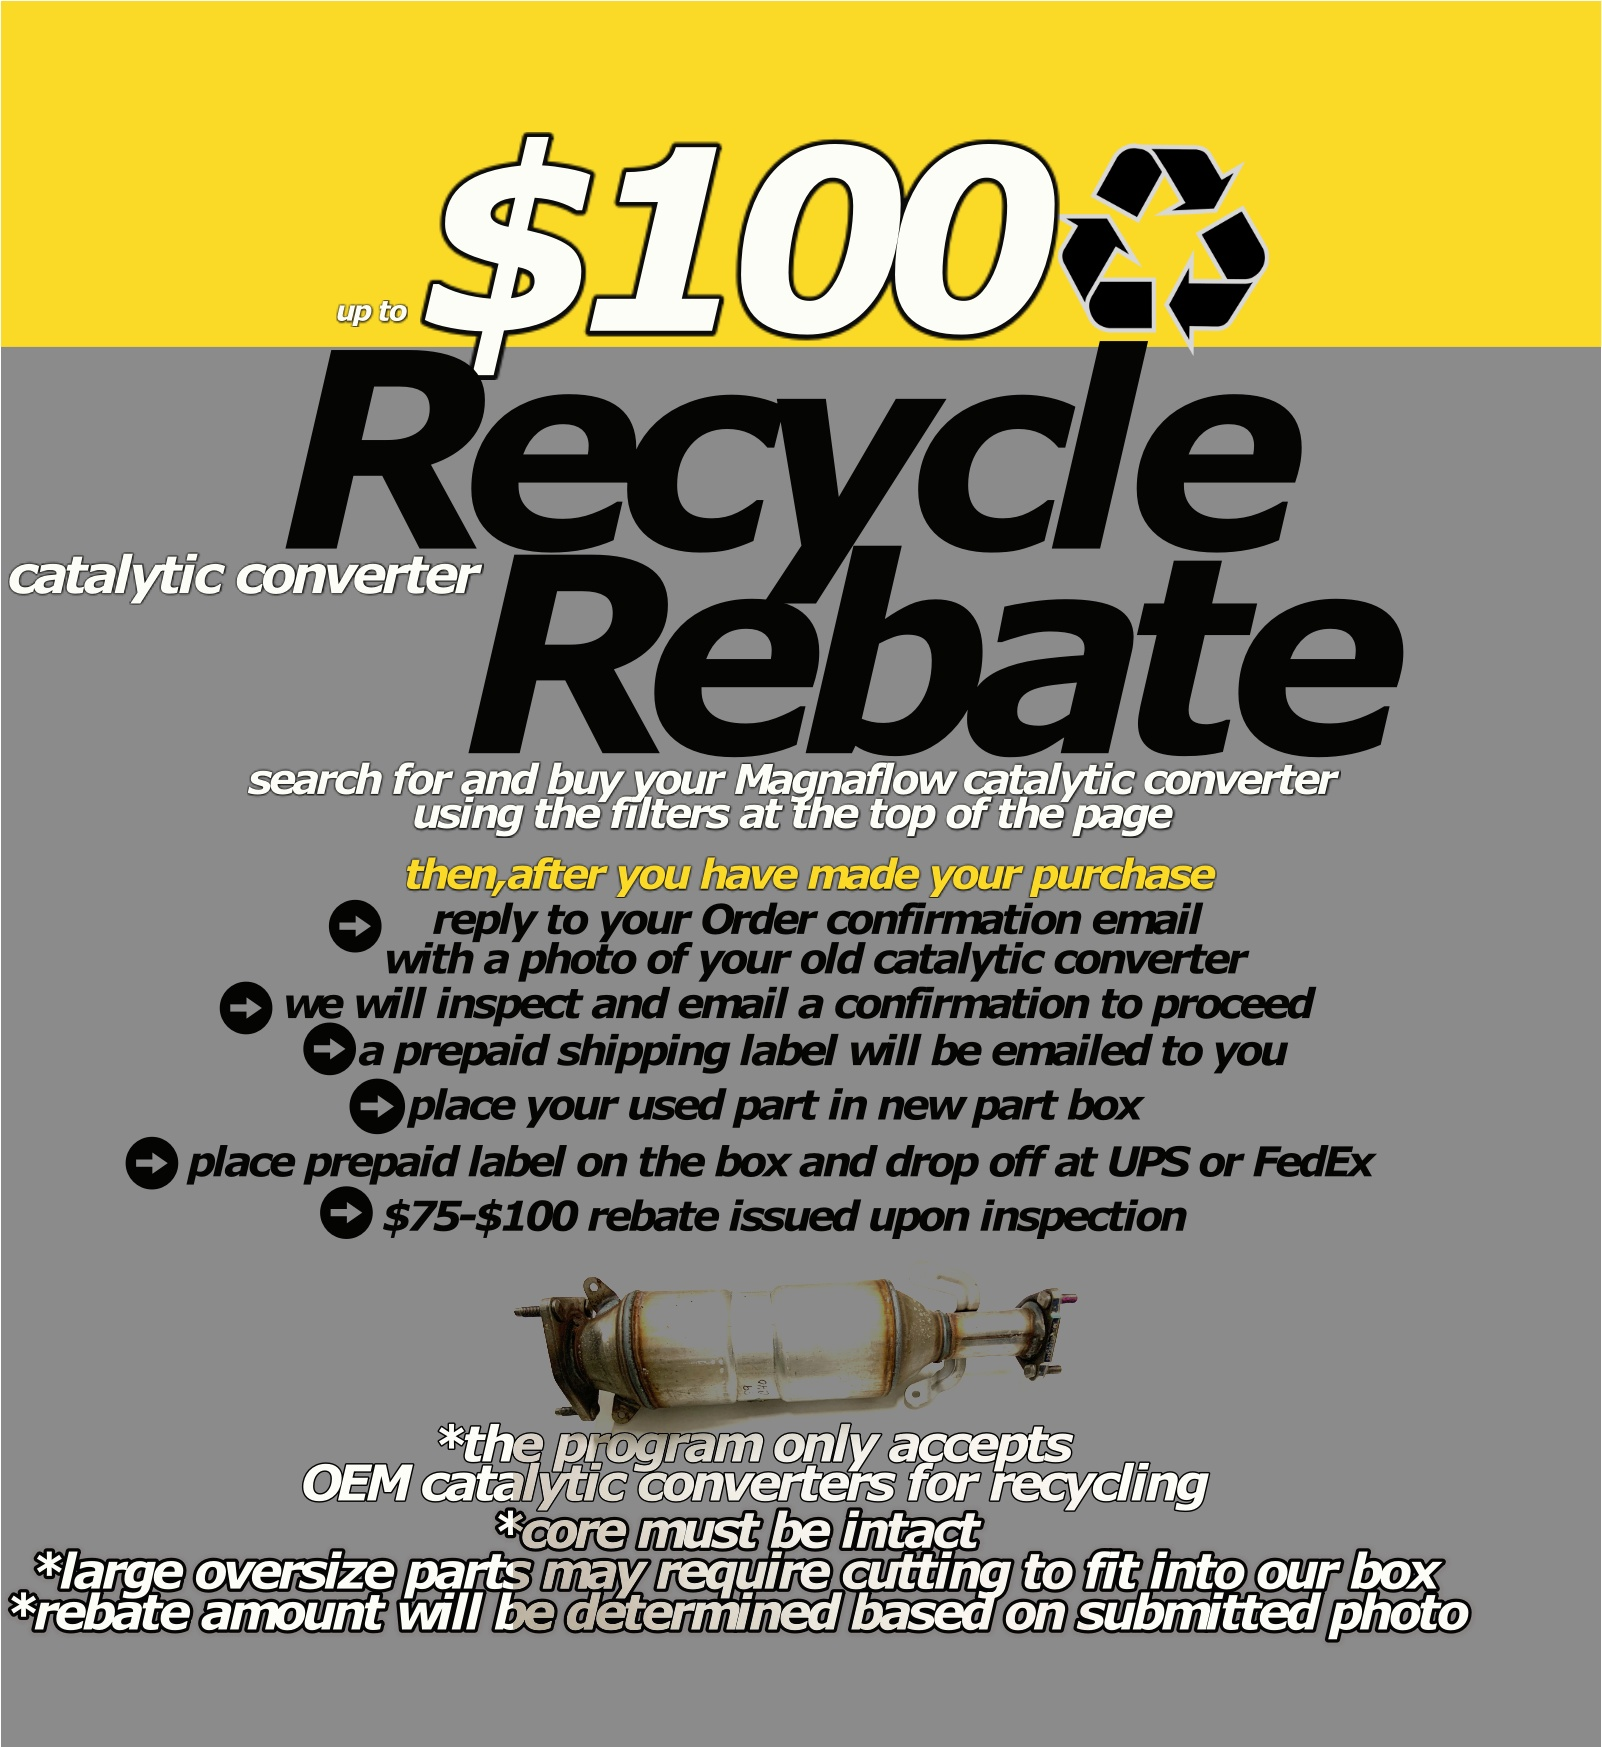 up to $100 catalytic converter recycling rebate search for and buy your Magnaflow catalytic converter using the filters at the top of the page reply by email to your Order confirmation  with a photo of your old catalytic converter we will inspect and email a confirmation to proceed place your used part in new part box  *core must be intact *large oversize parts may require cutting to fit into our box *rebate amount will be determined based on submitted photo